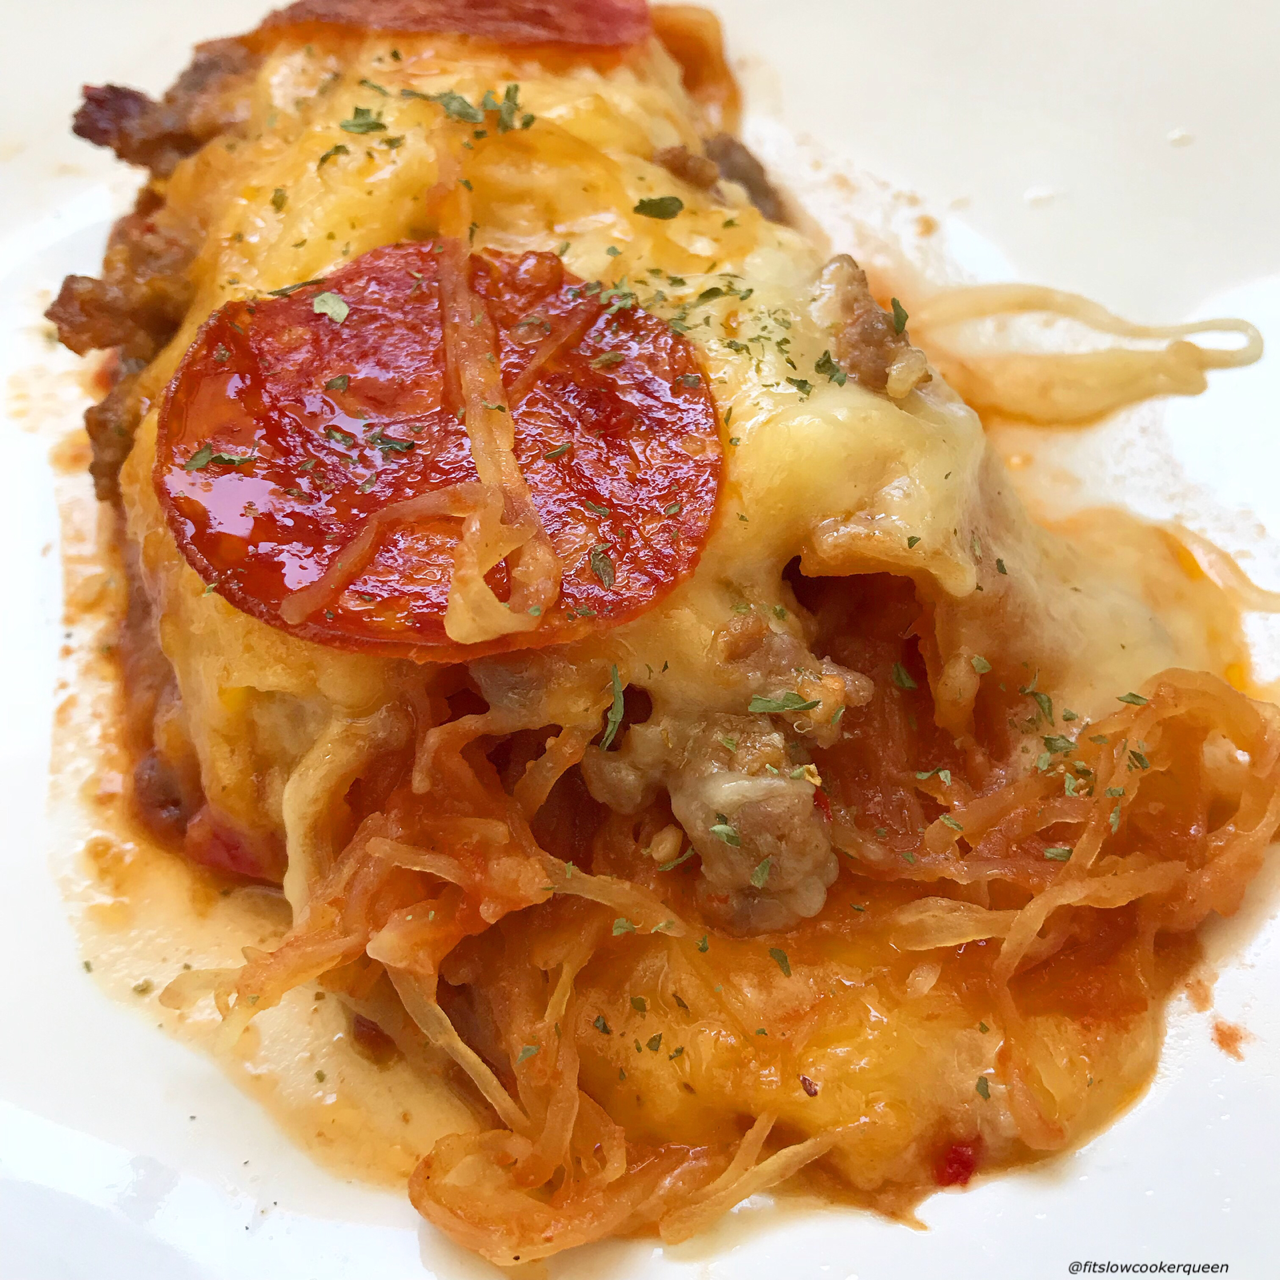 There are only a few ingredients in this slowcooker spaghetti squashcasserole recipe. This healthy, low-carb alternative to spaghetticooks in just a couple of hours time.